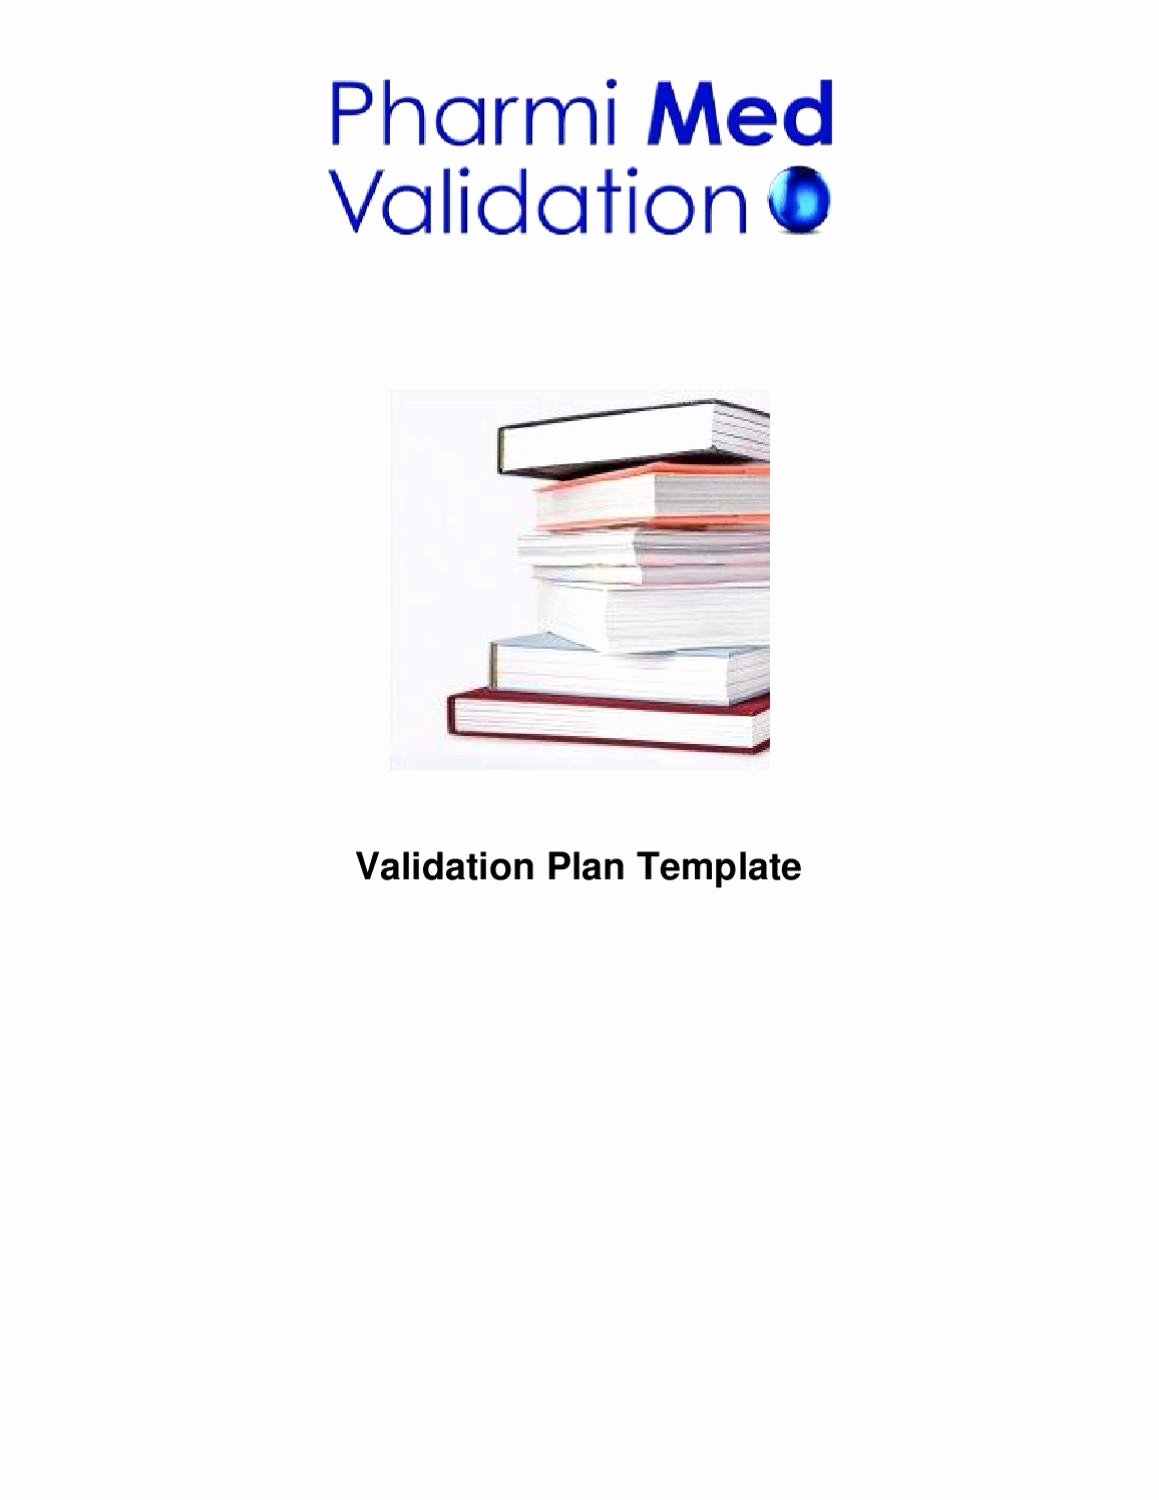 Validation Master Plan Template New Validation Plan Template Sample by Pharmi Med Ltd issuu